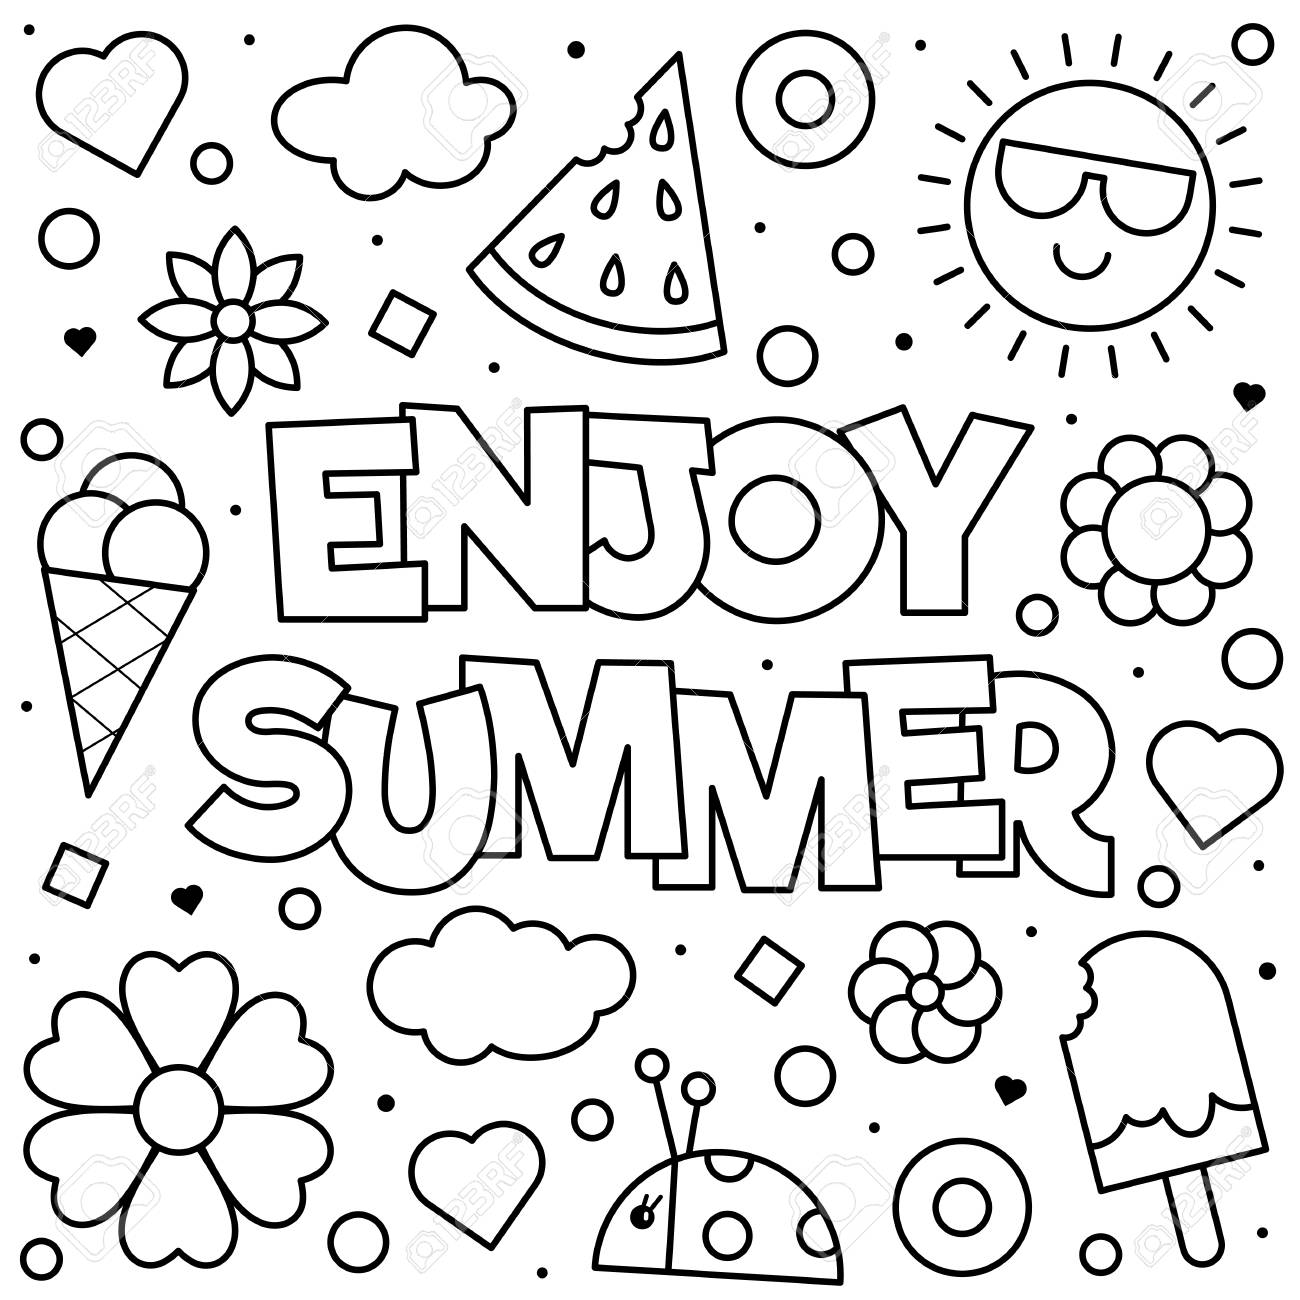 Enjoy Summer Coloring Page Black And White Vector Illustration Royalty Free Cliparts Vectors And Stock Illustration Image 114893855